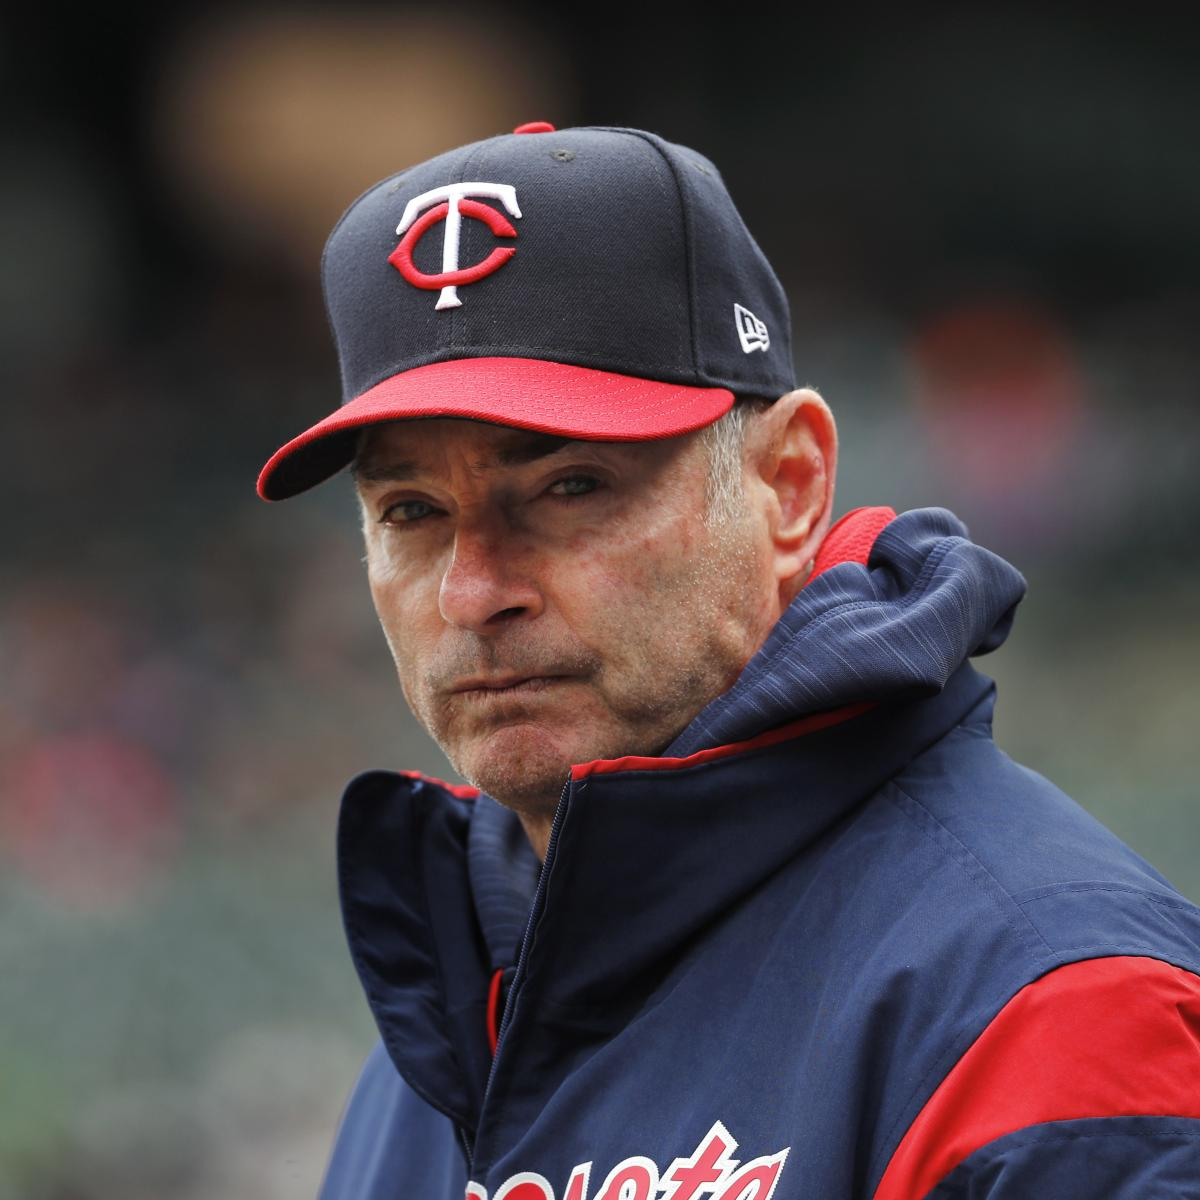 Paul Molitor Wins 2017 AL Manager of Year Award